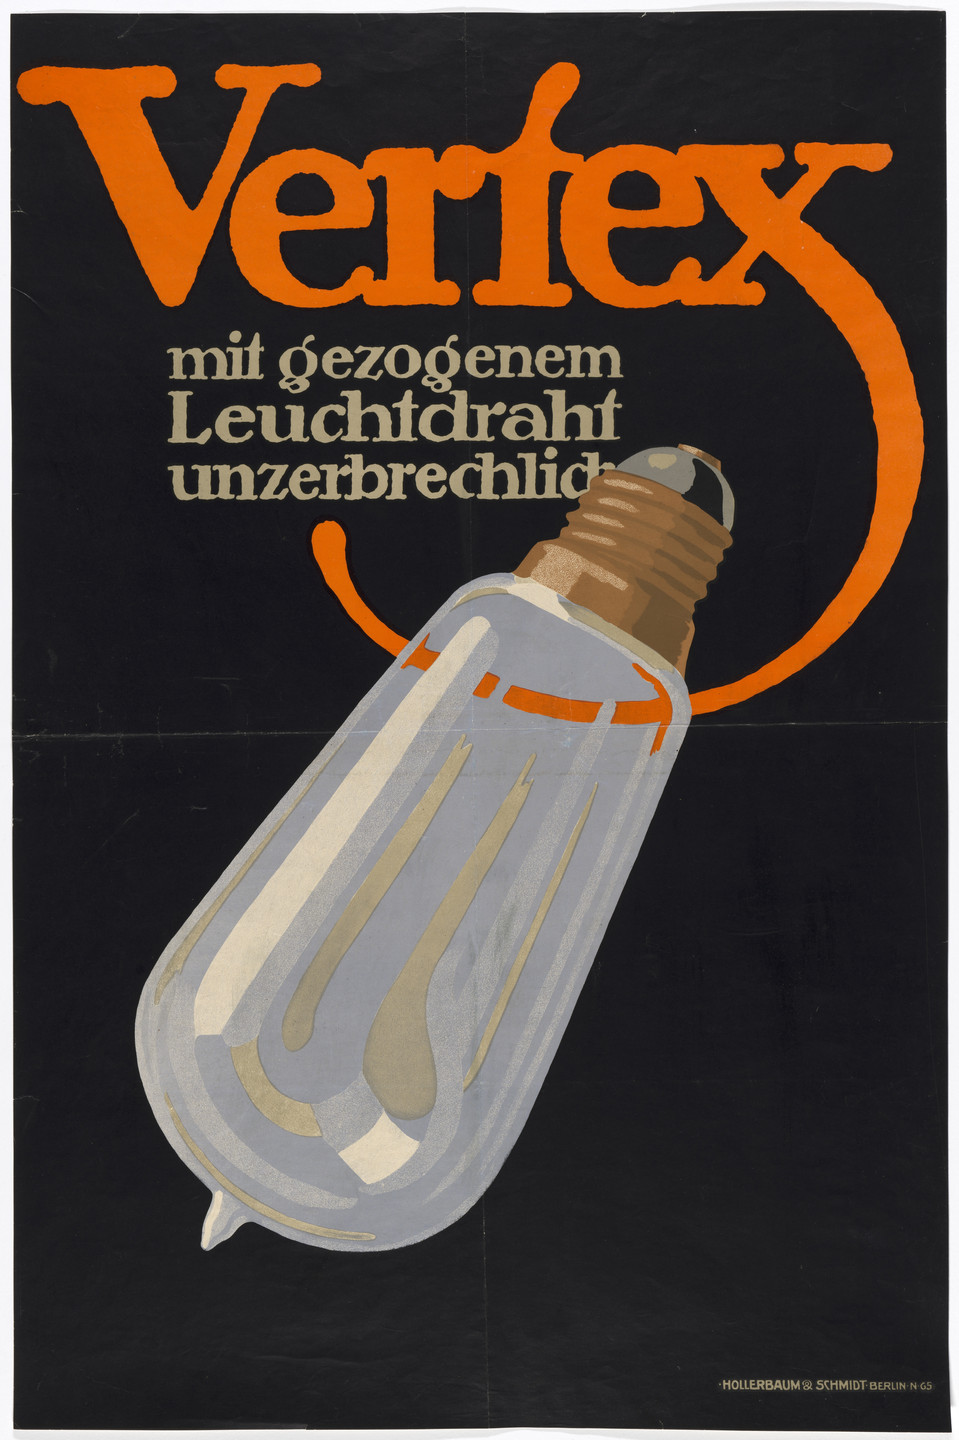 Lucian Bernhard. Poster for the Vertex lighting company. 1912